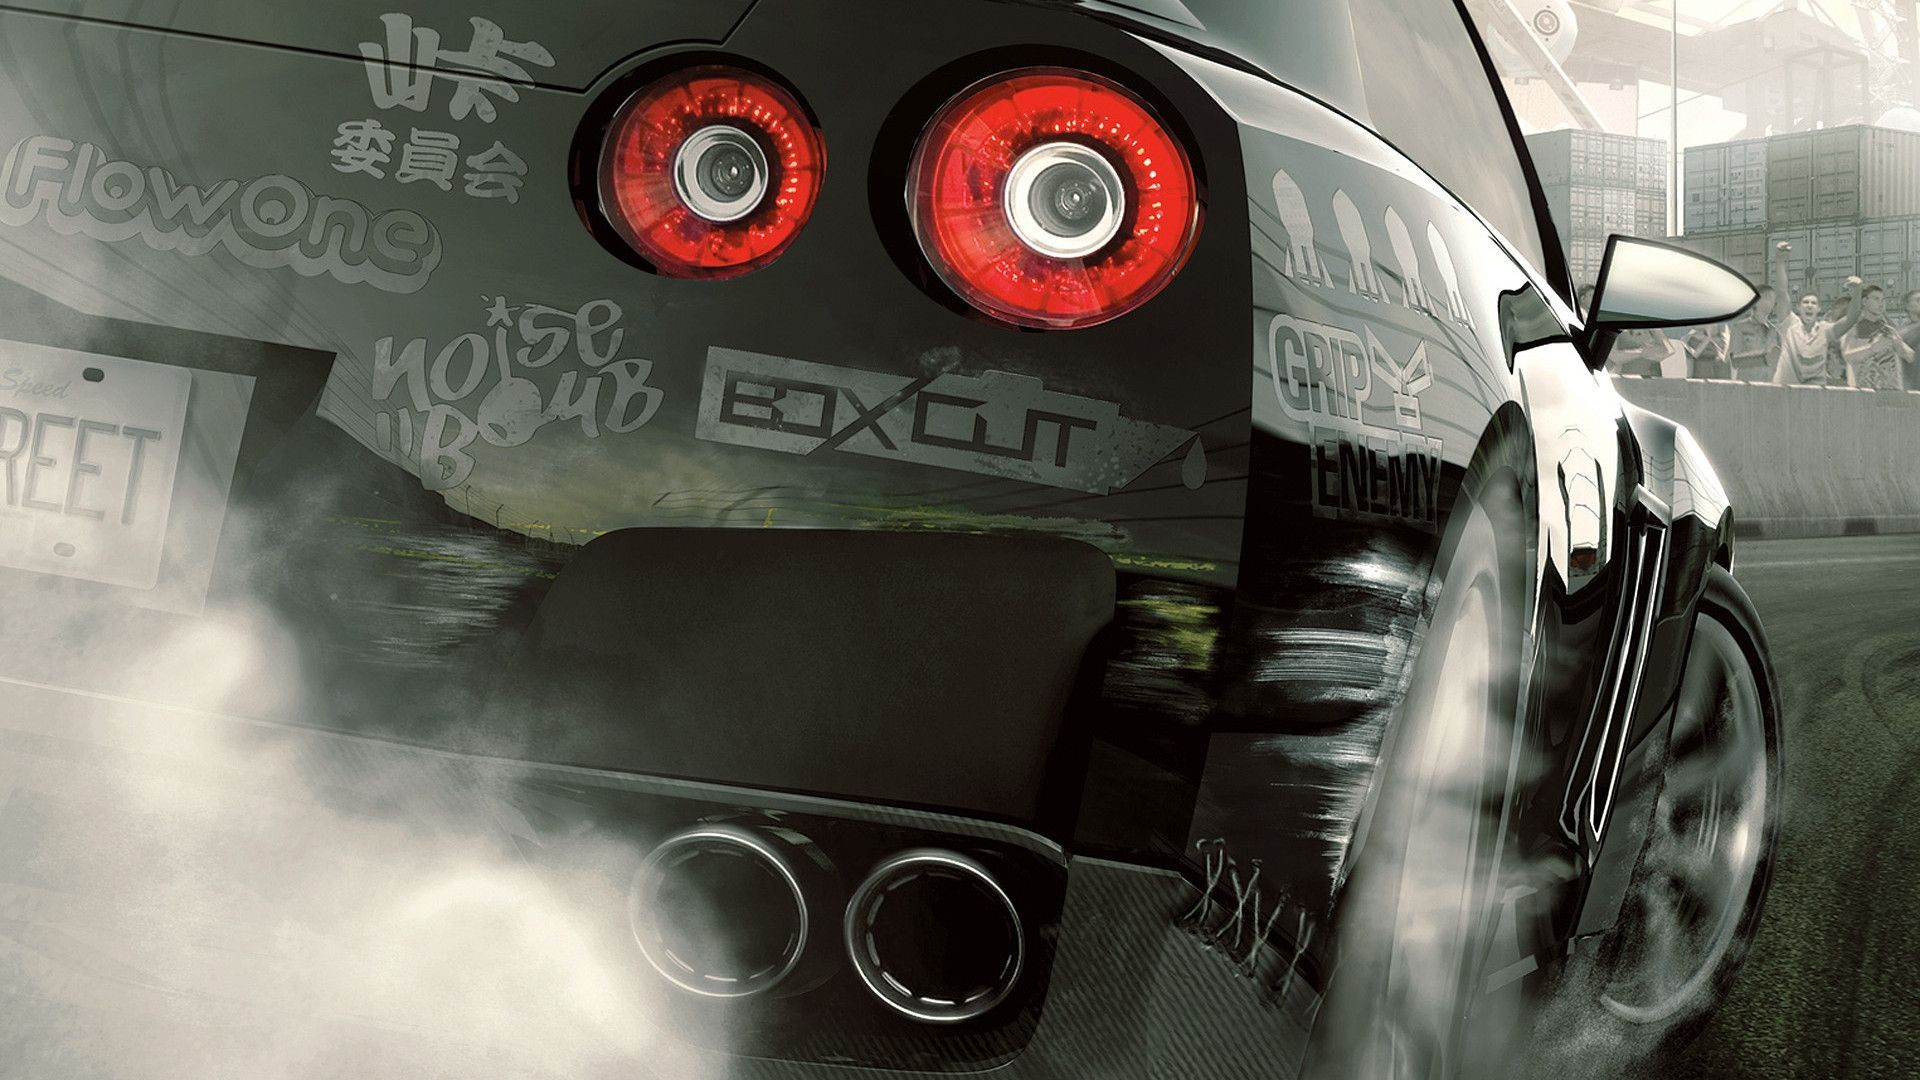 Gt Hd Game Wallpapers 1080p Hd Imageswall Com Need For Speed Need For Speed Cars Need For Speed Prostreet